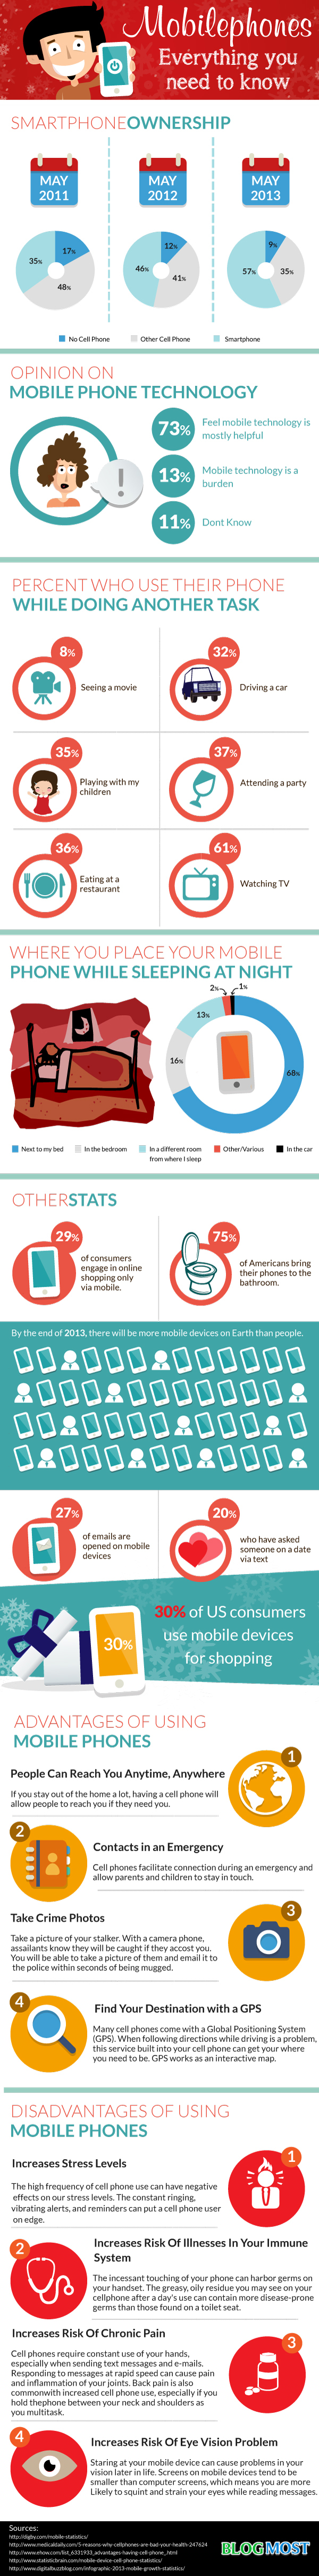 Mobile-Phone-Stats-Infographic